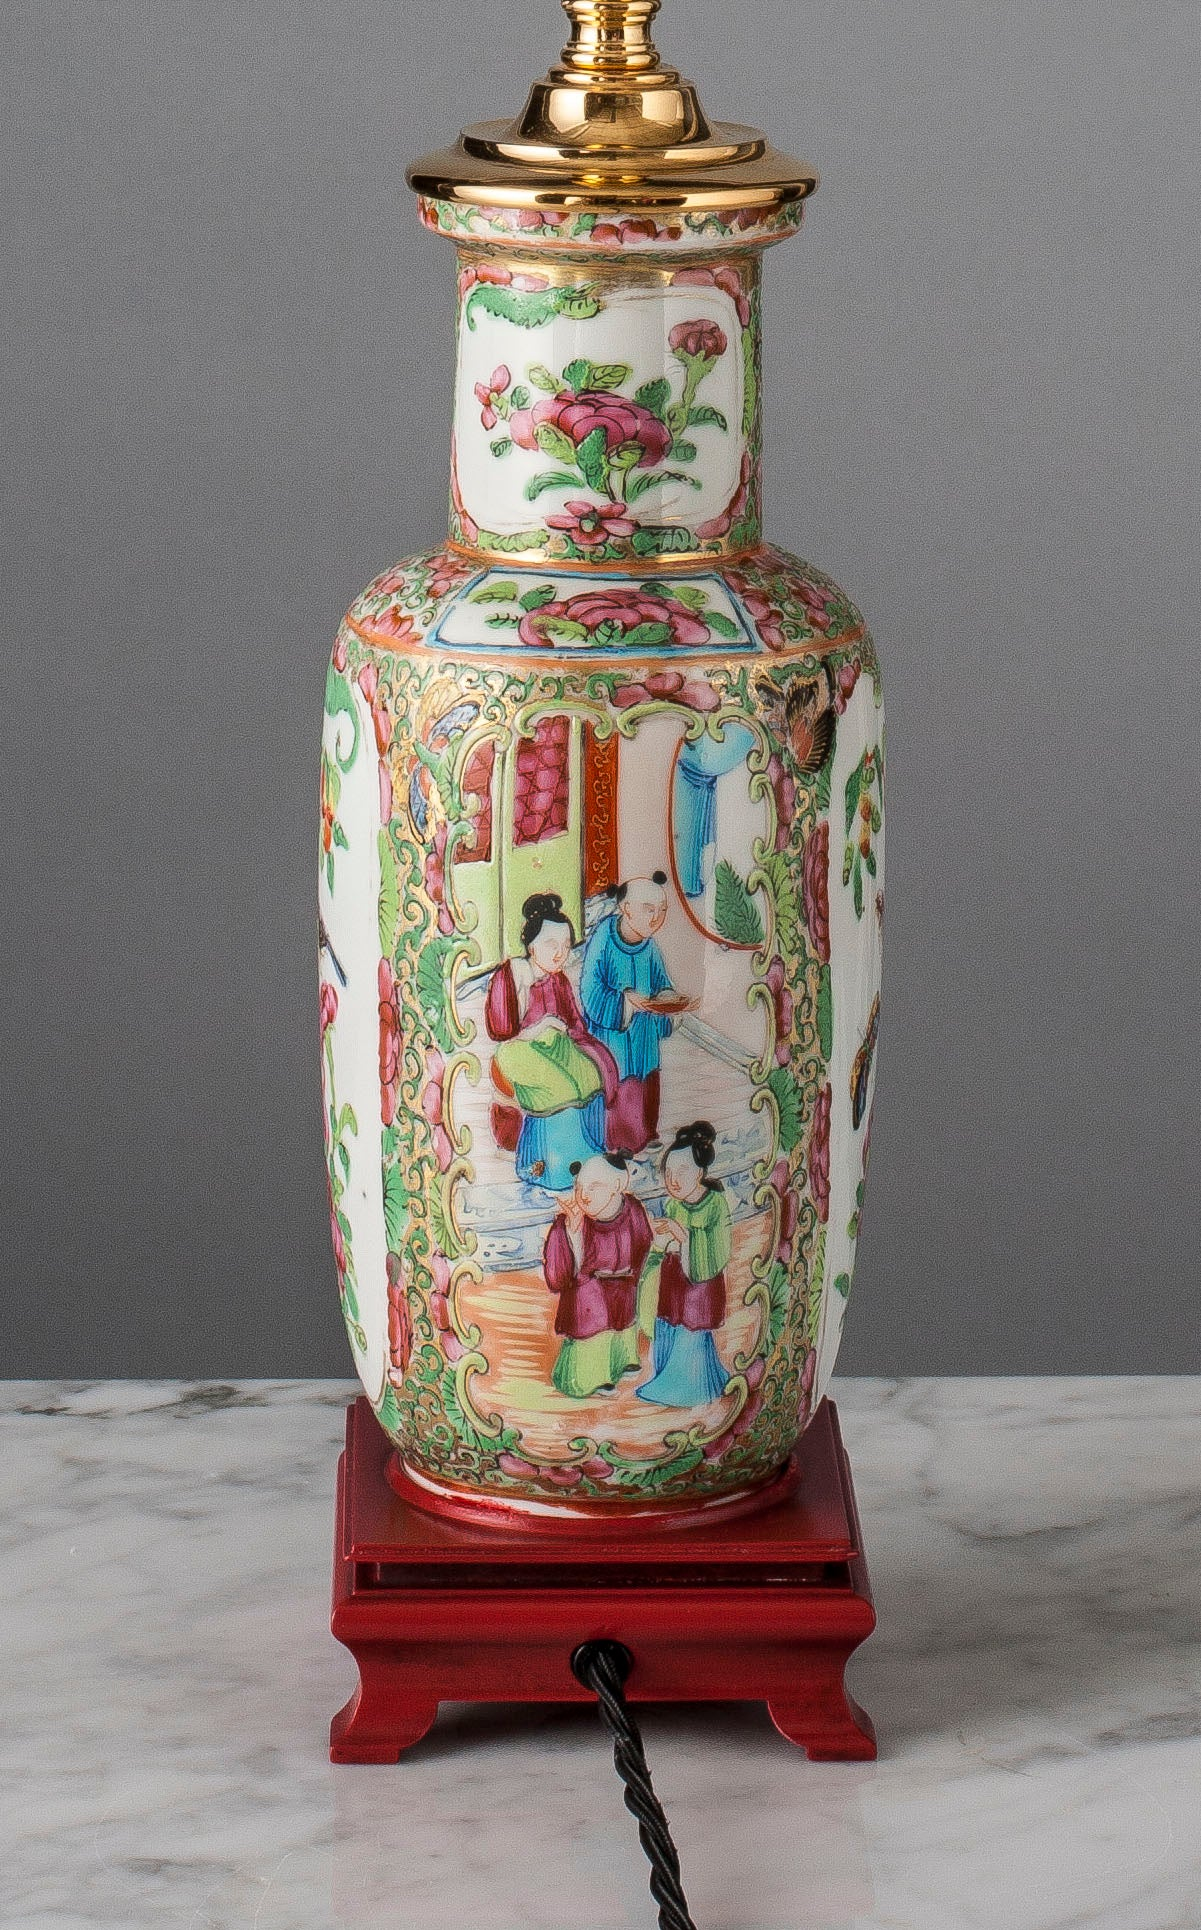 B016  A Fine Chinese Cantonese Rouleau Shaped Famille Rose Lamp - Circa 1850